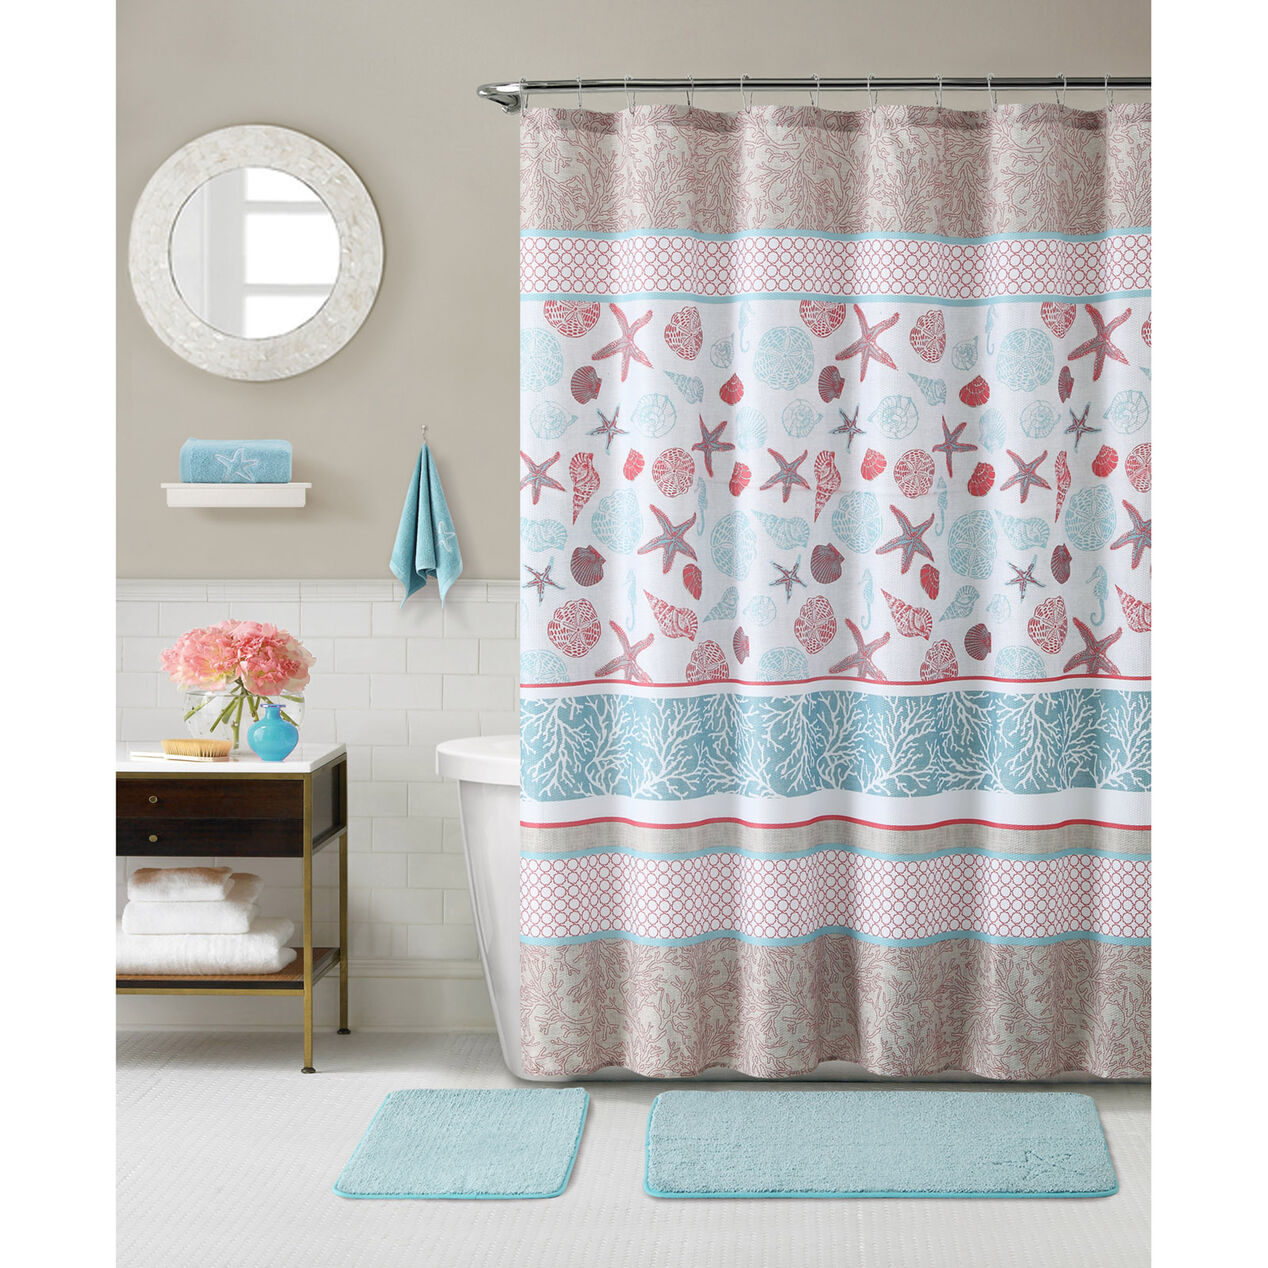 Light turquoise shower curtain - Harbor Lights Shower Curtain Multi Colored